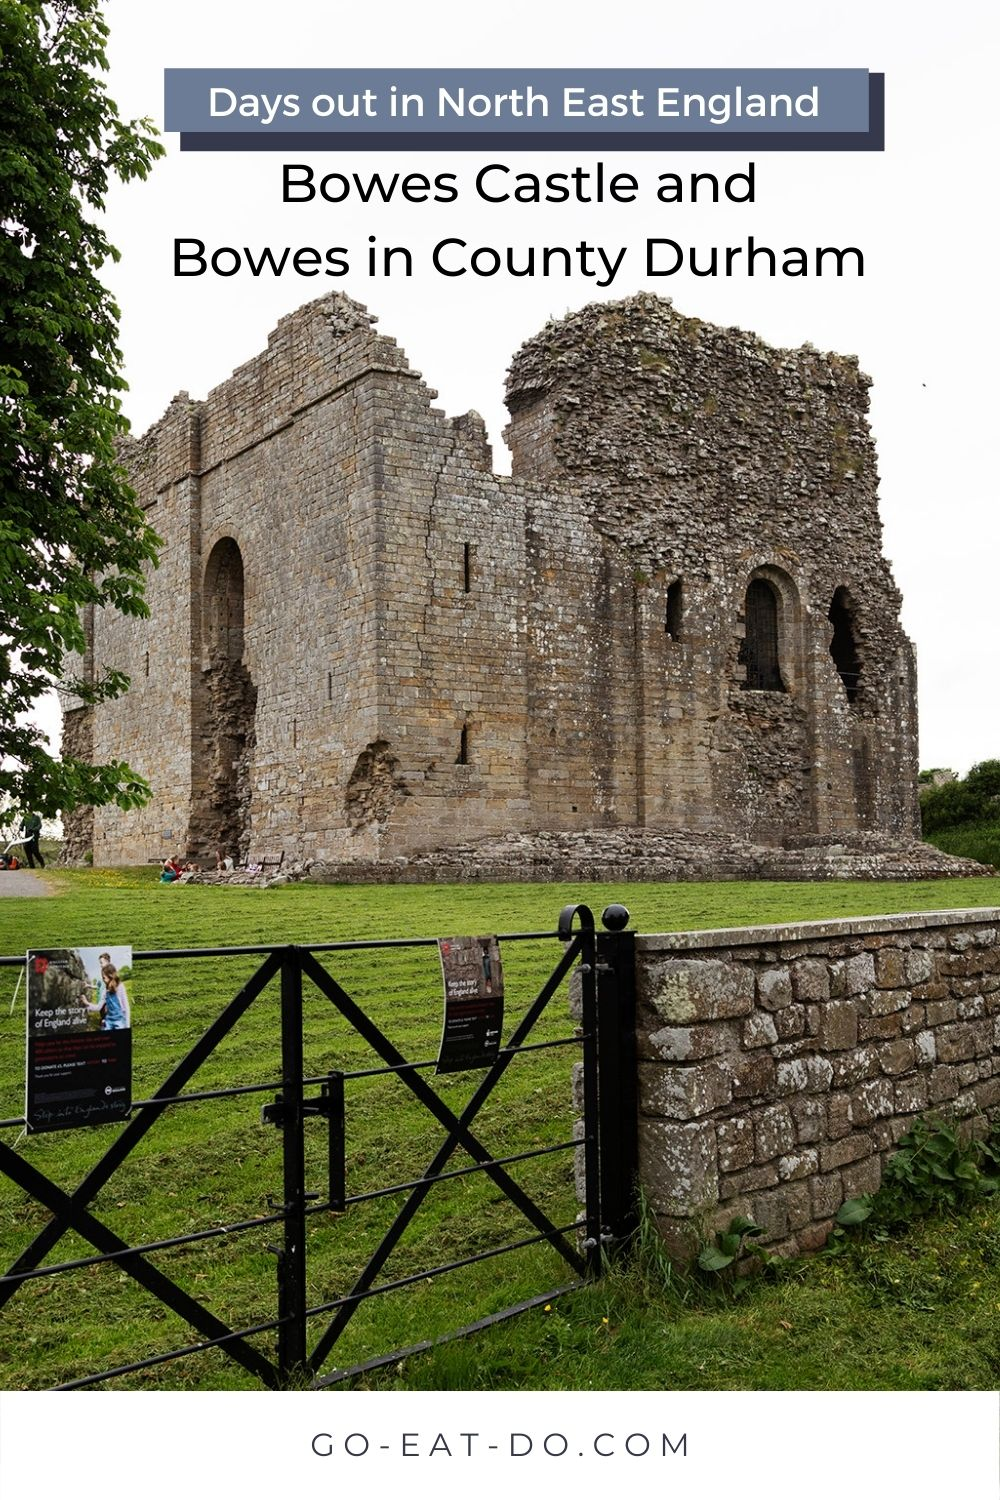 Ideas for days out in North East England Pinterest pin for Go Eat Do's blog post looking at things to do in Bowes, County Durham, including visiting Bowes Castle and staying at the Ancient Unicorn.